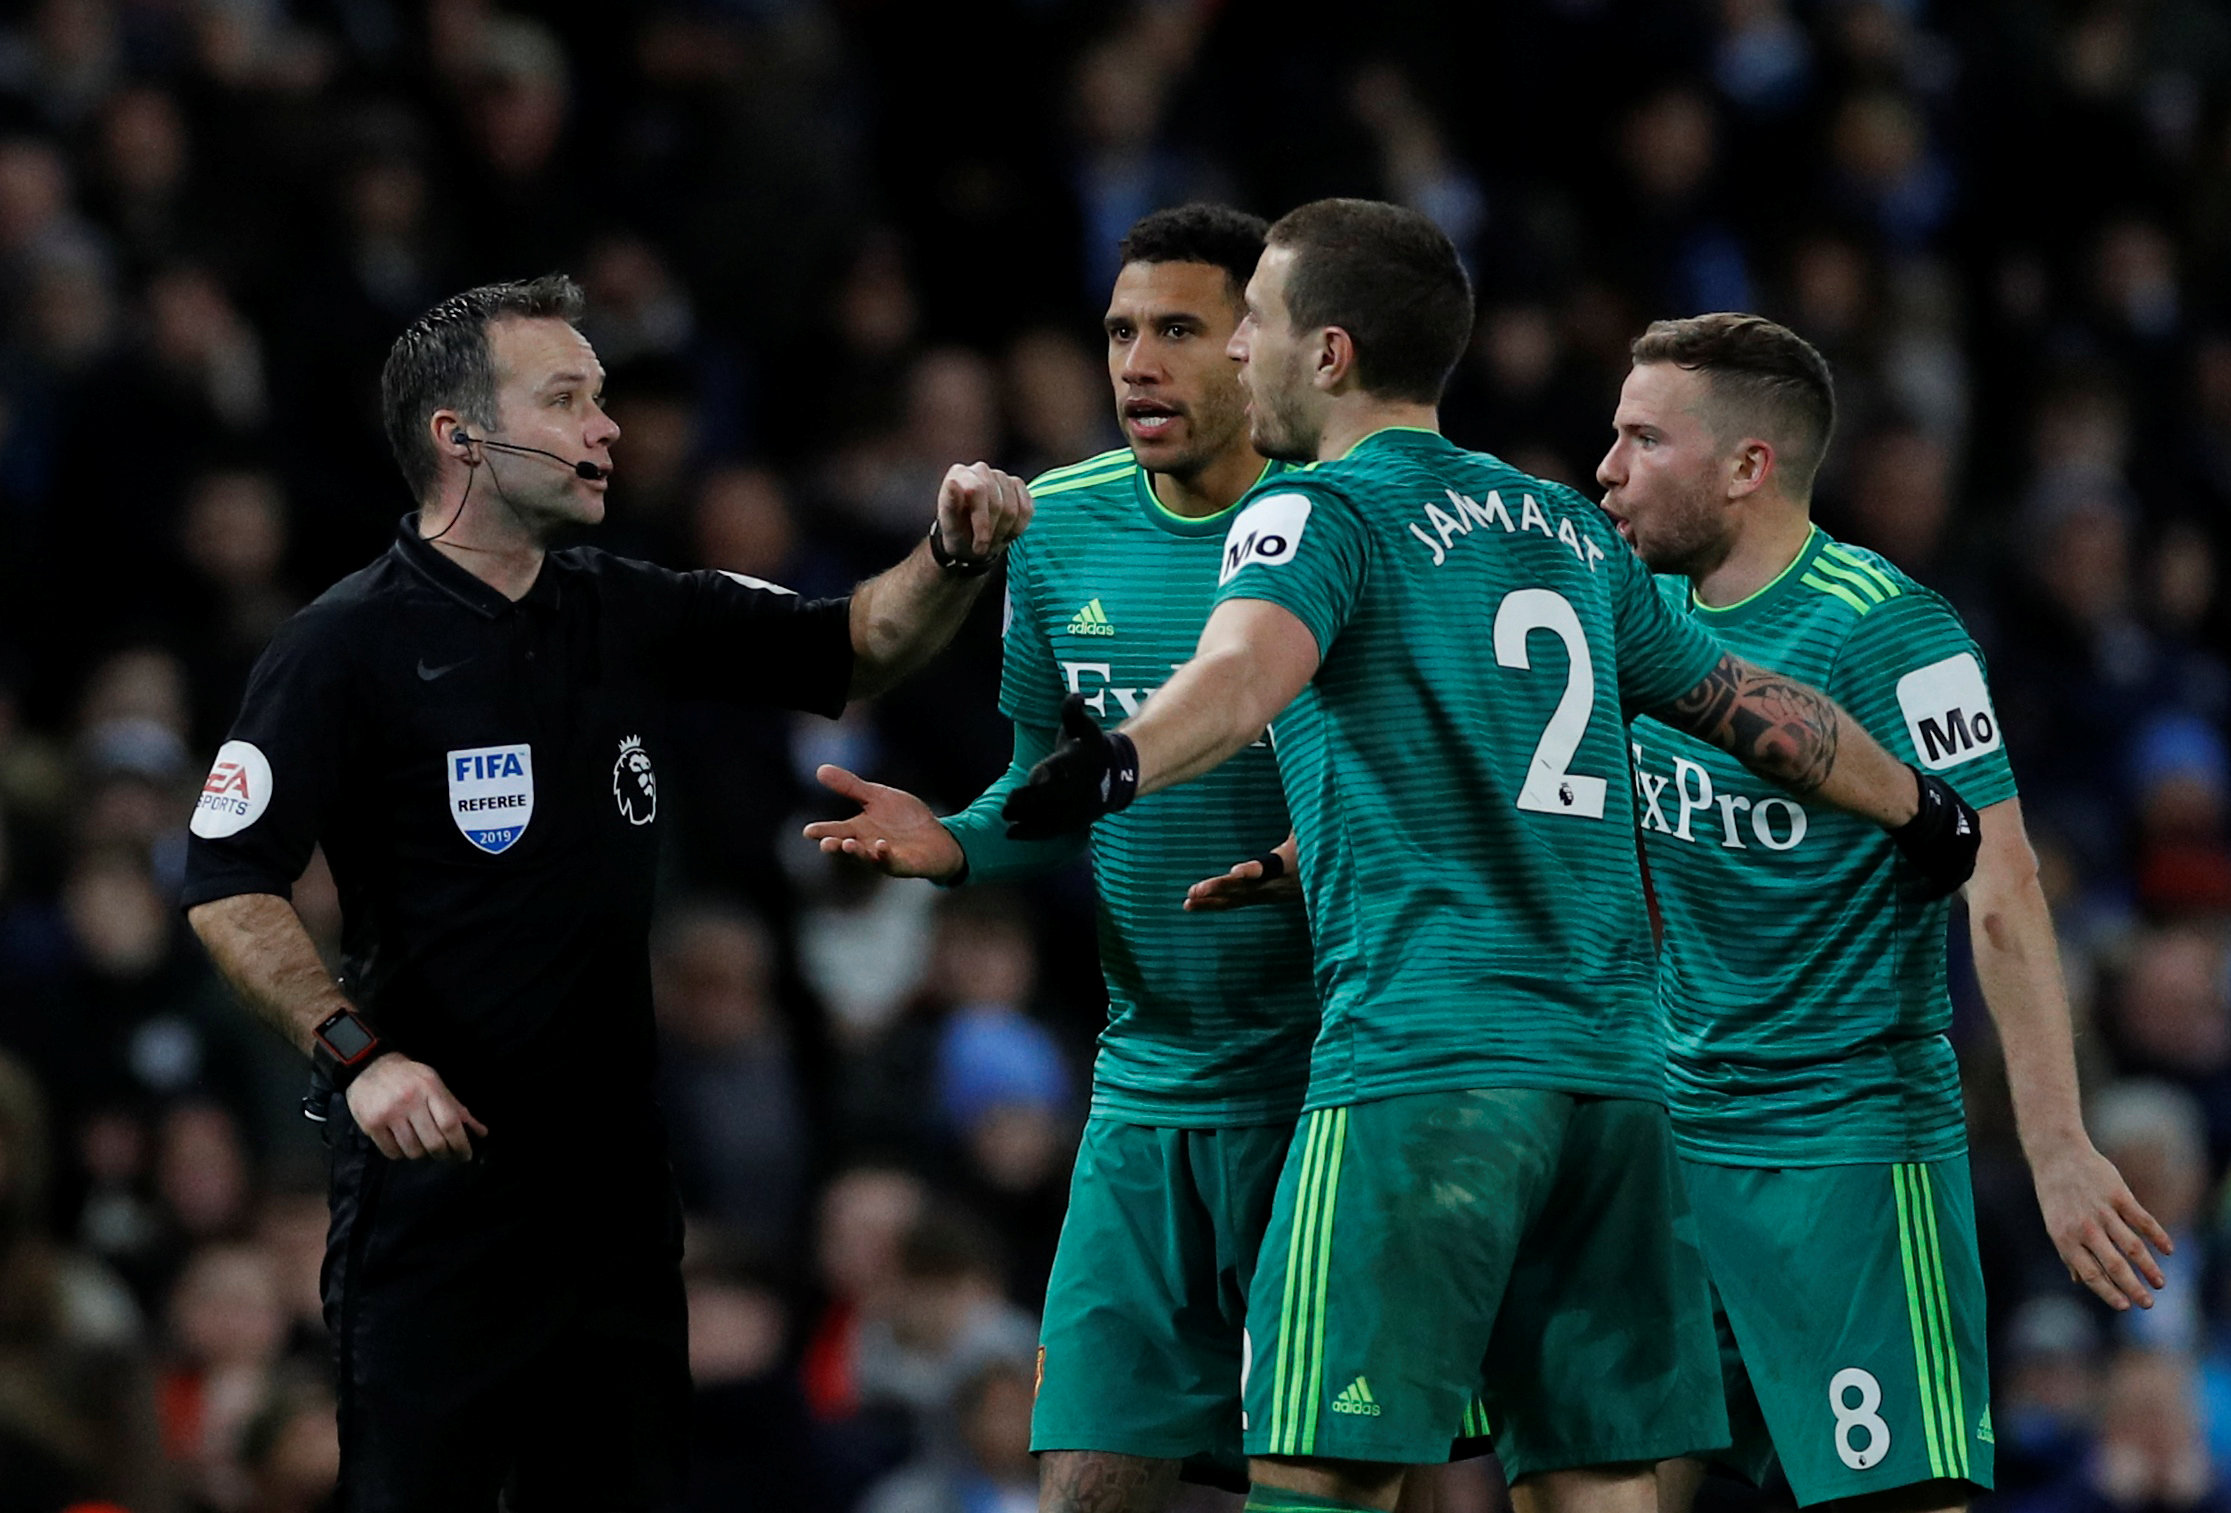 IN PICTURES: Offside controversy as Hornets lose at champions